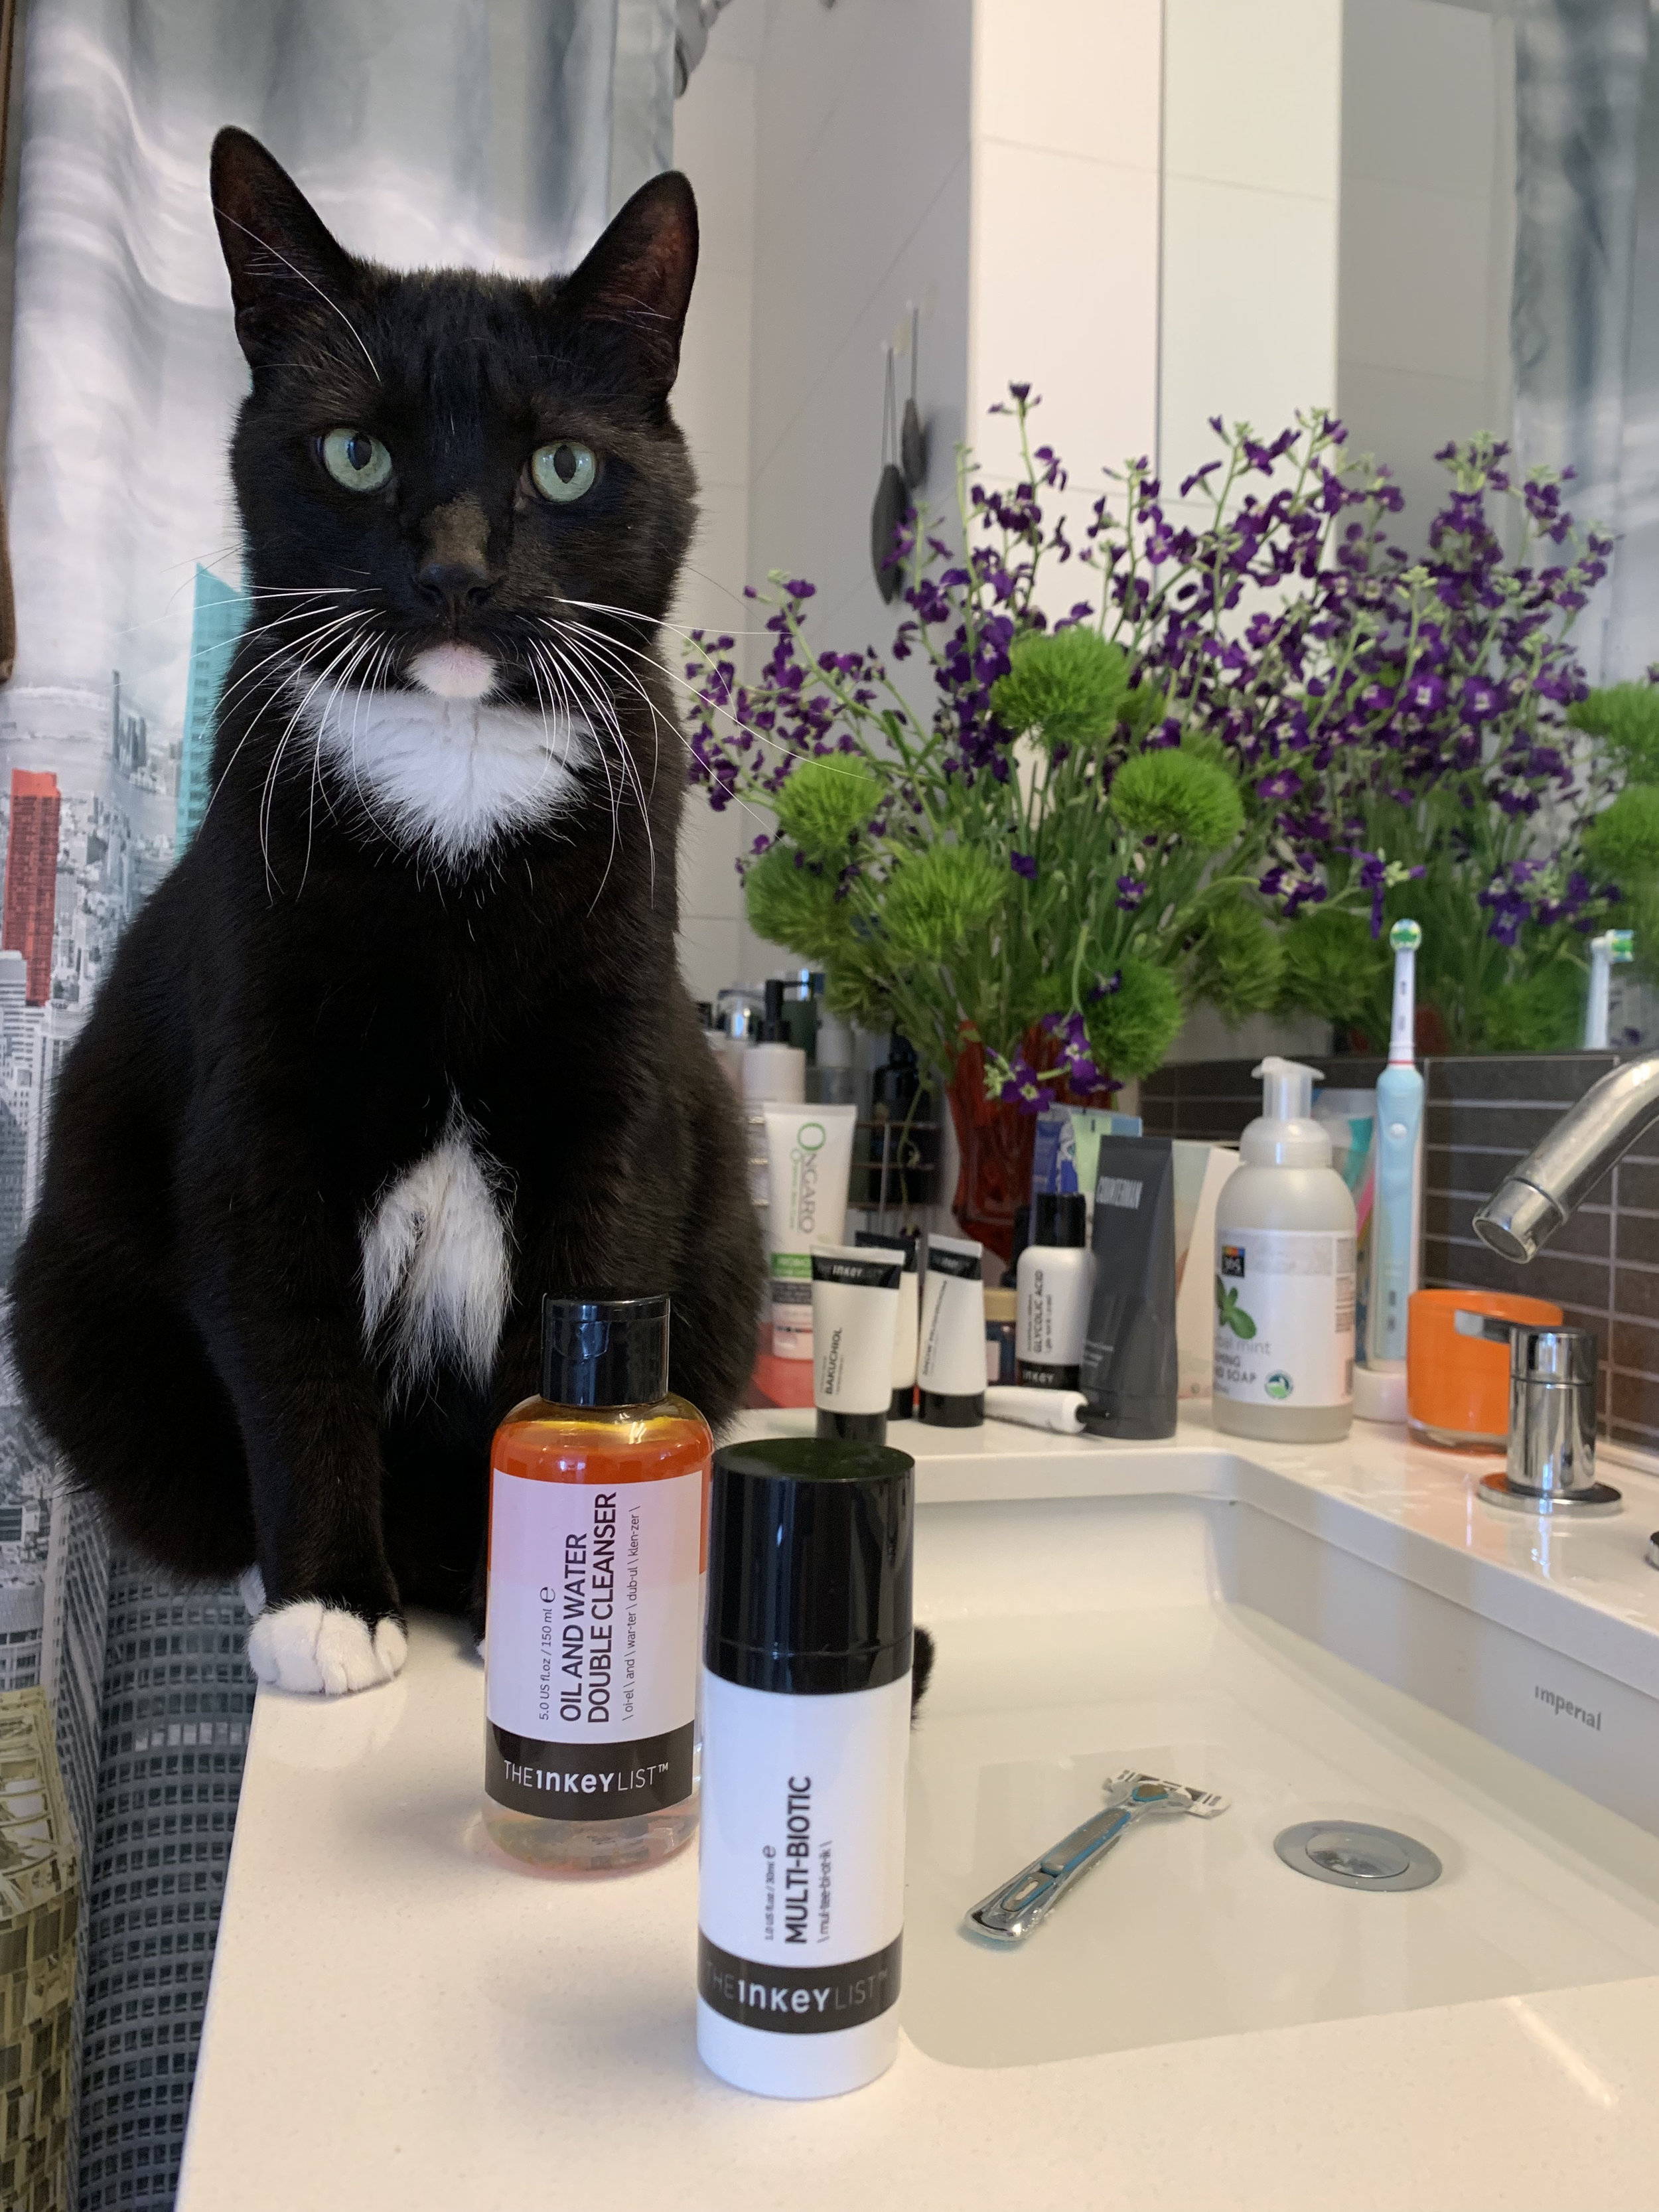 Orpheus wonders which products are best for his feline skin.